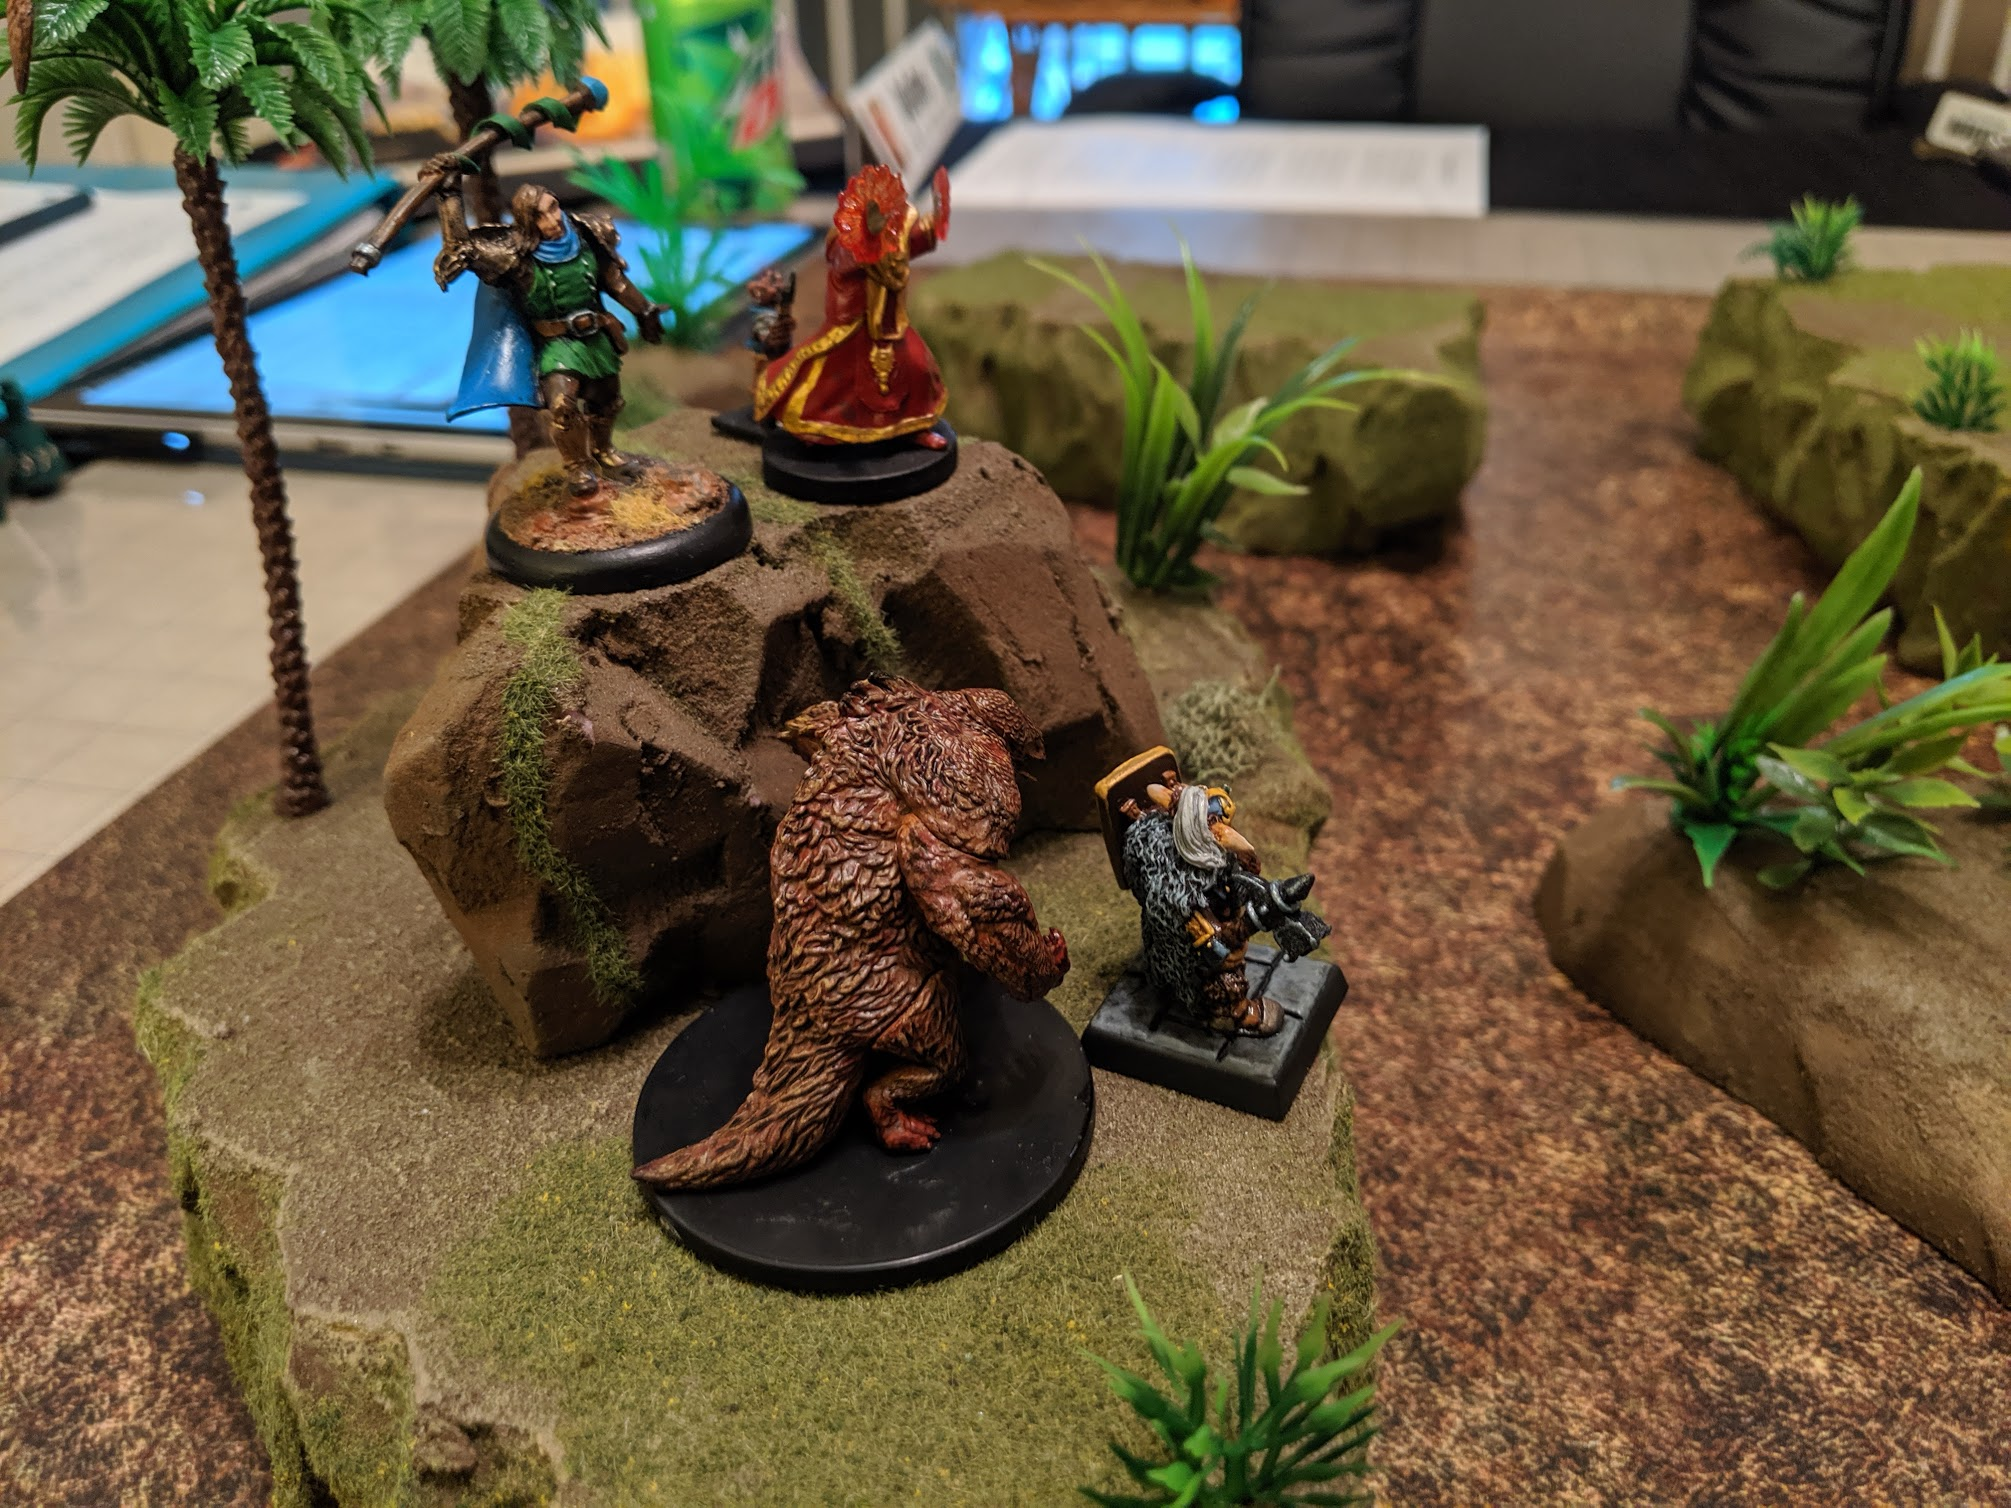 Owlbear attack!